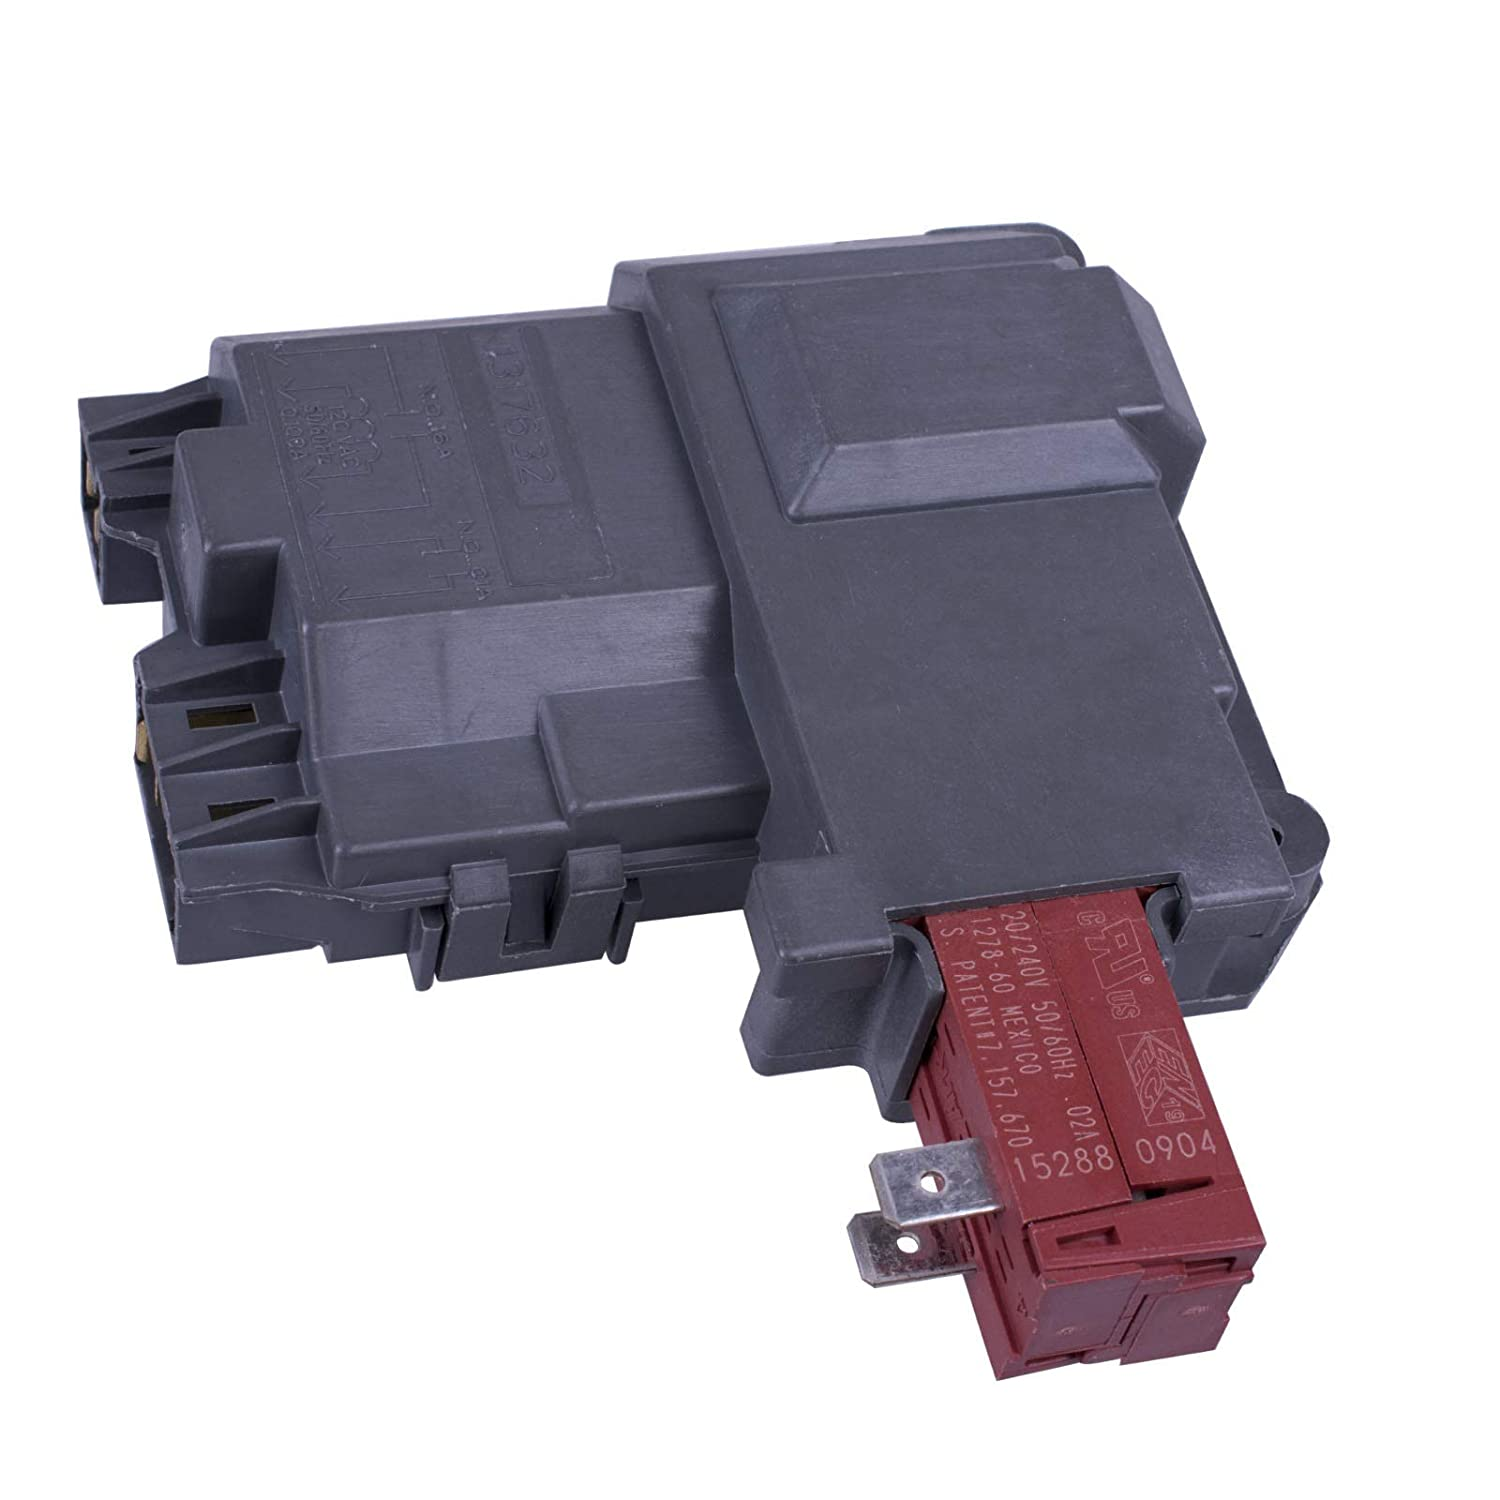 Bestparts NEW Replacement LID SWITCH Compatible for KENMORE FRIGIDAIRE HEAVY DUTY WASHING MACHINE WASHER 0131763202